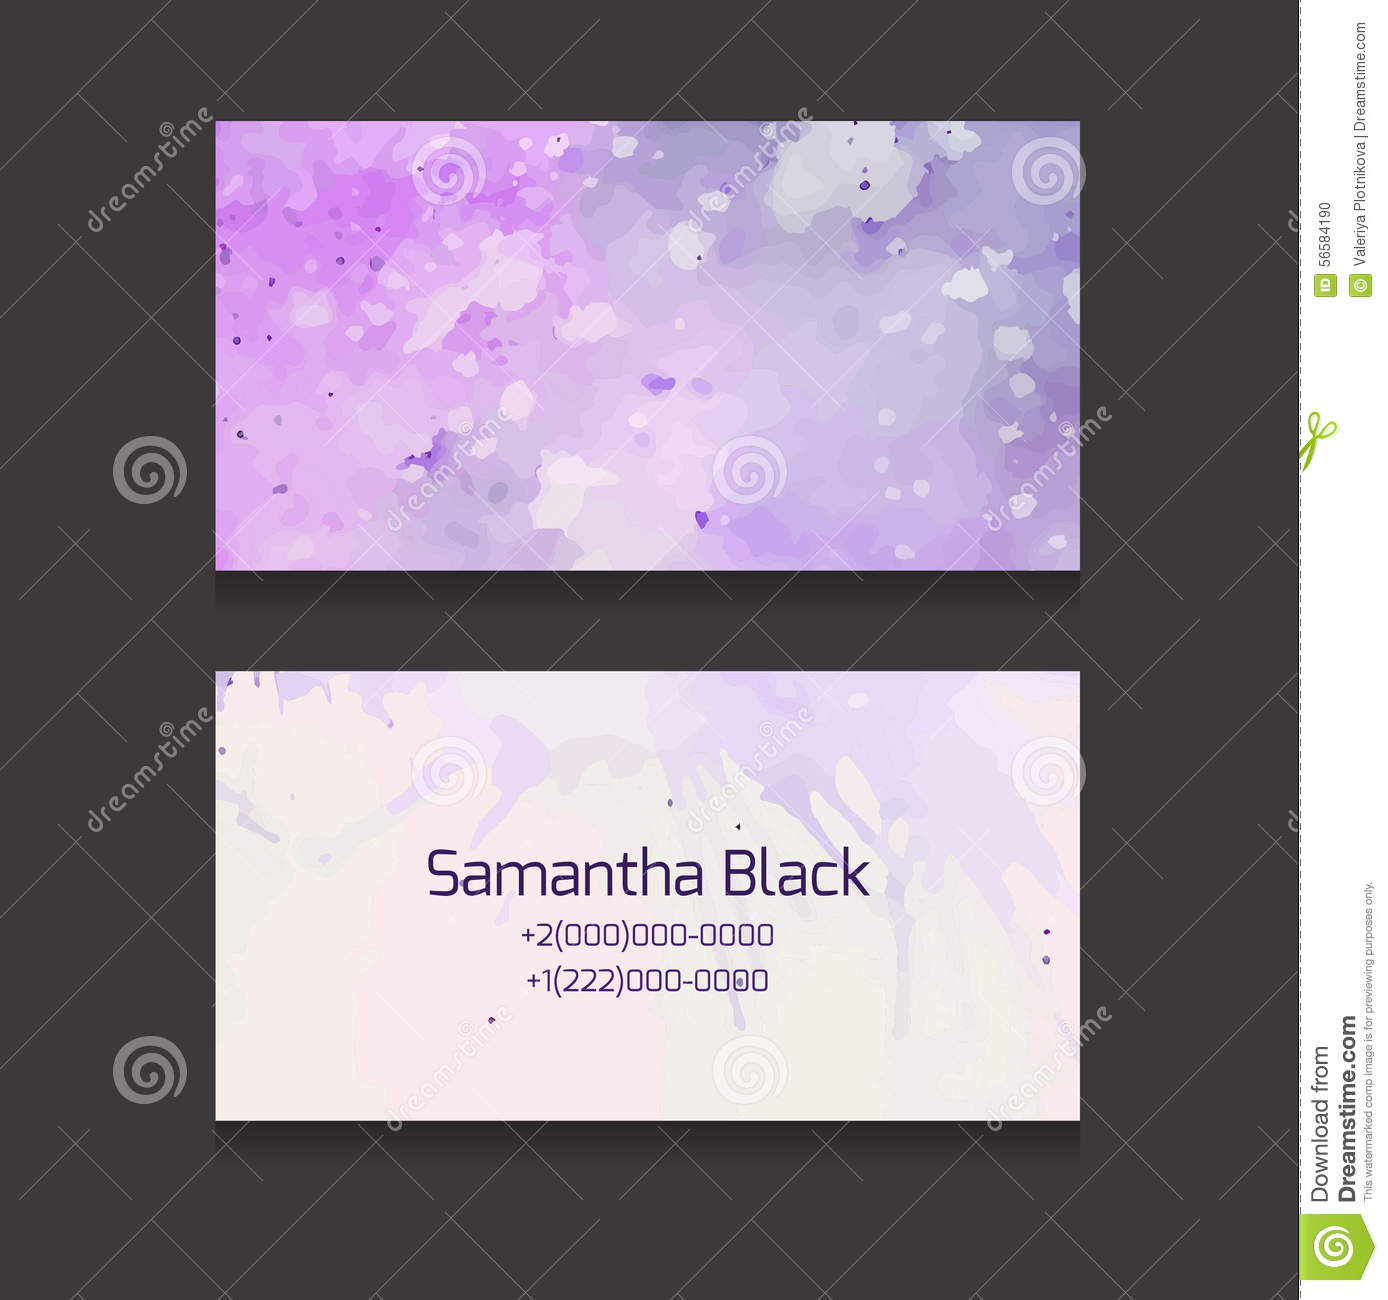 Double Sided Business Card Template Stock Vector Illustration Of - Free double sided business card template